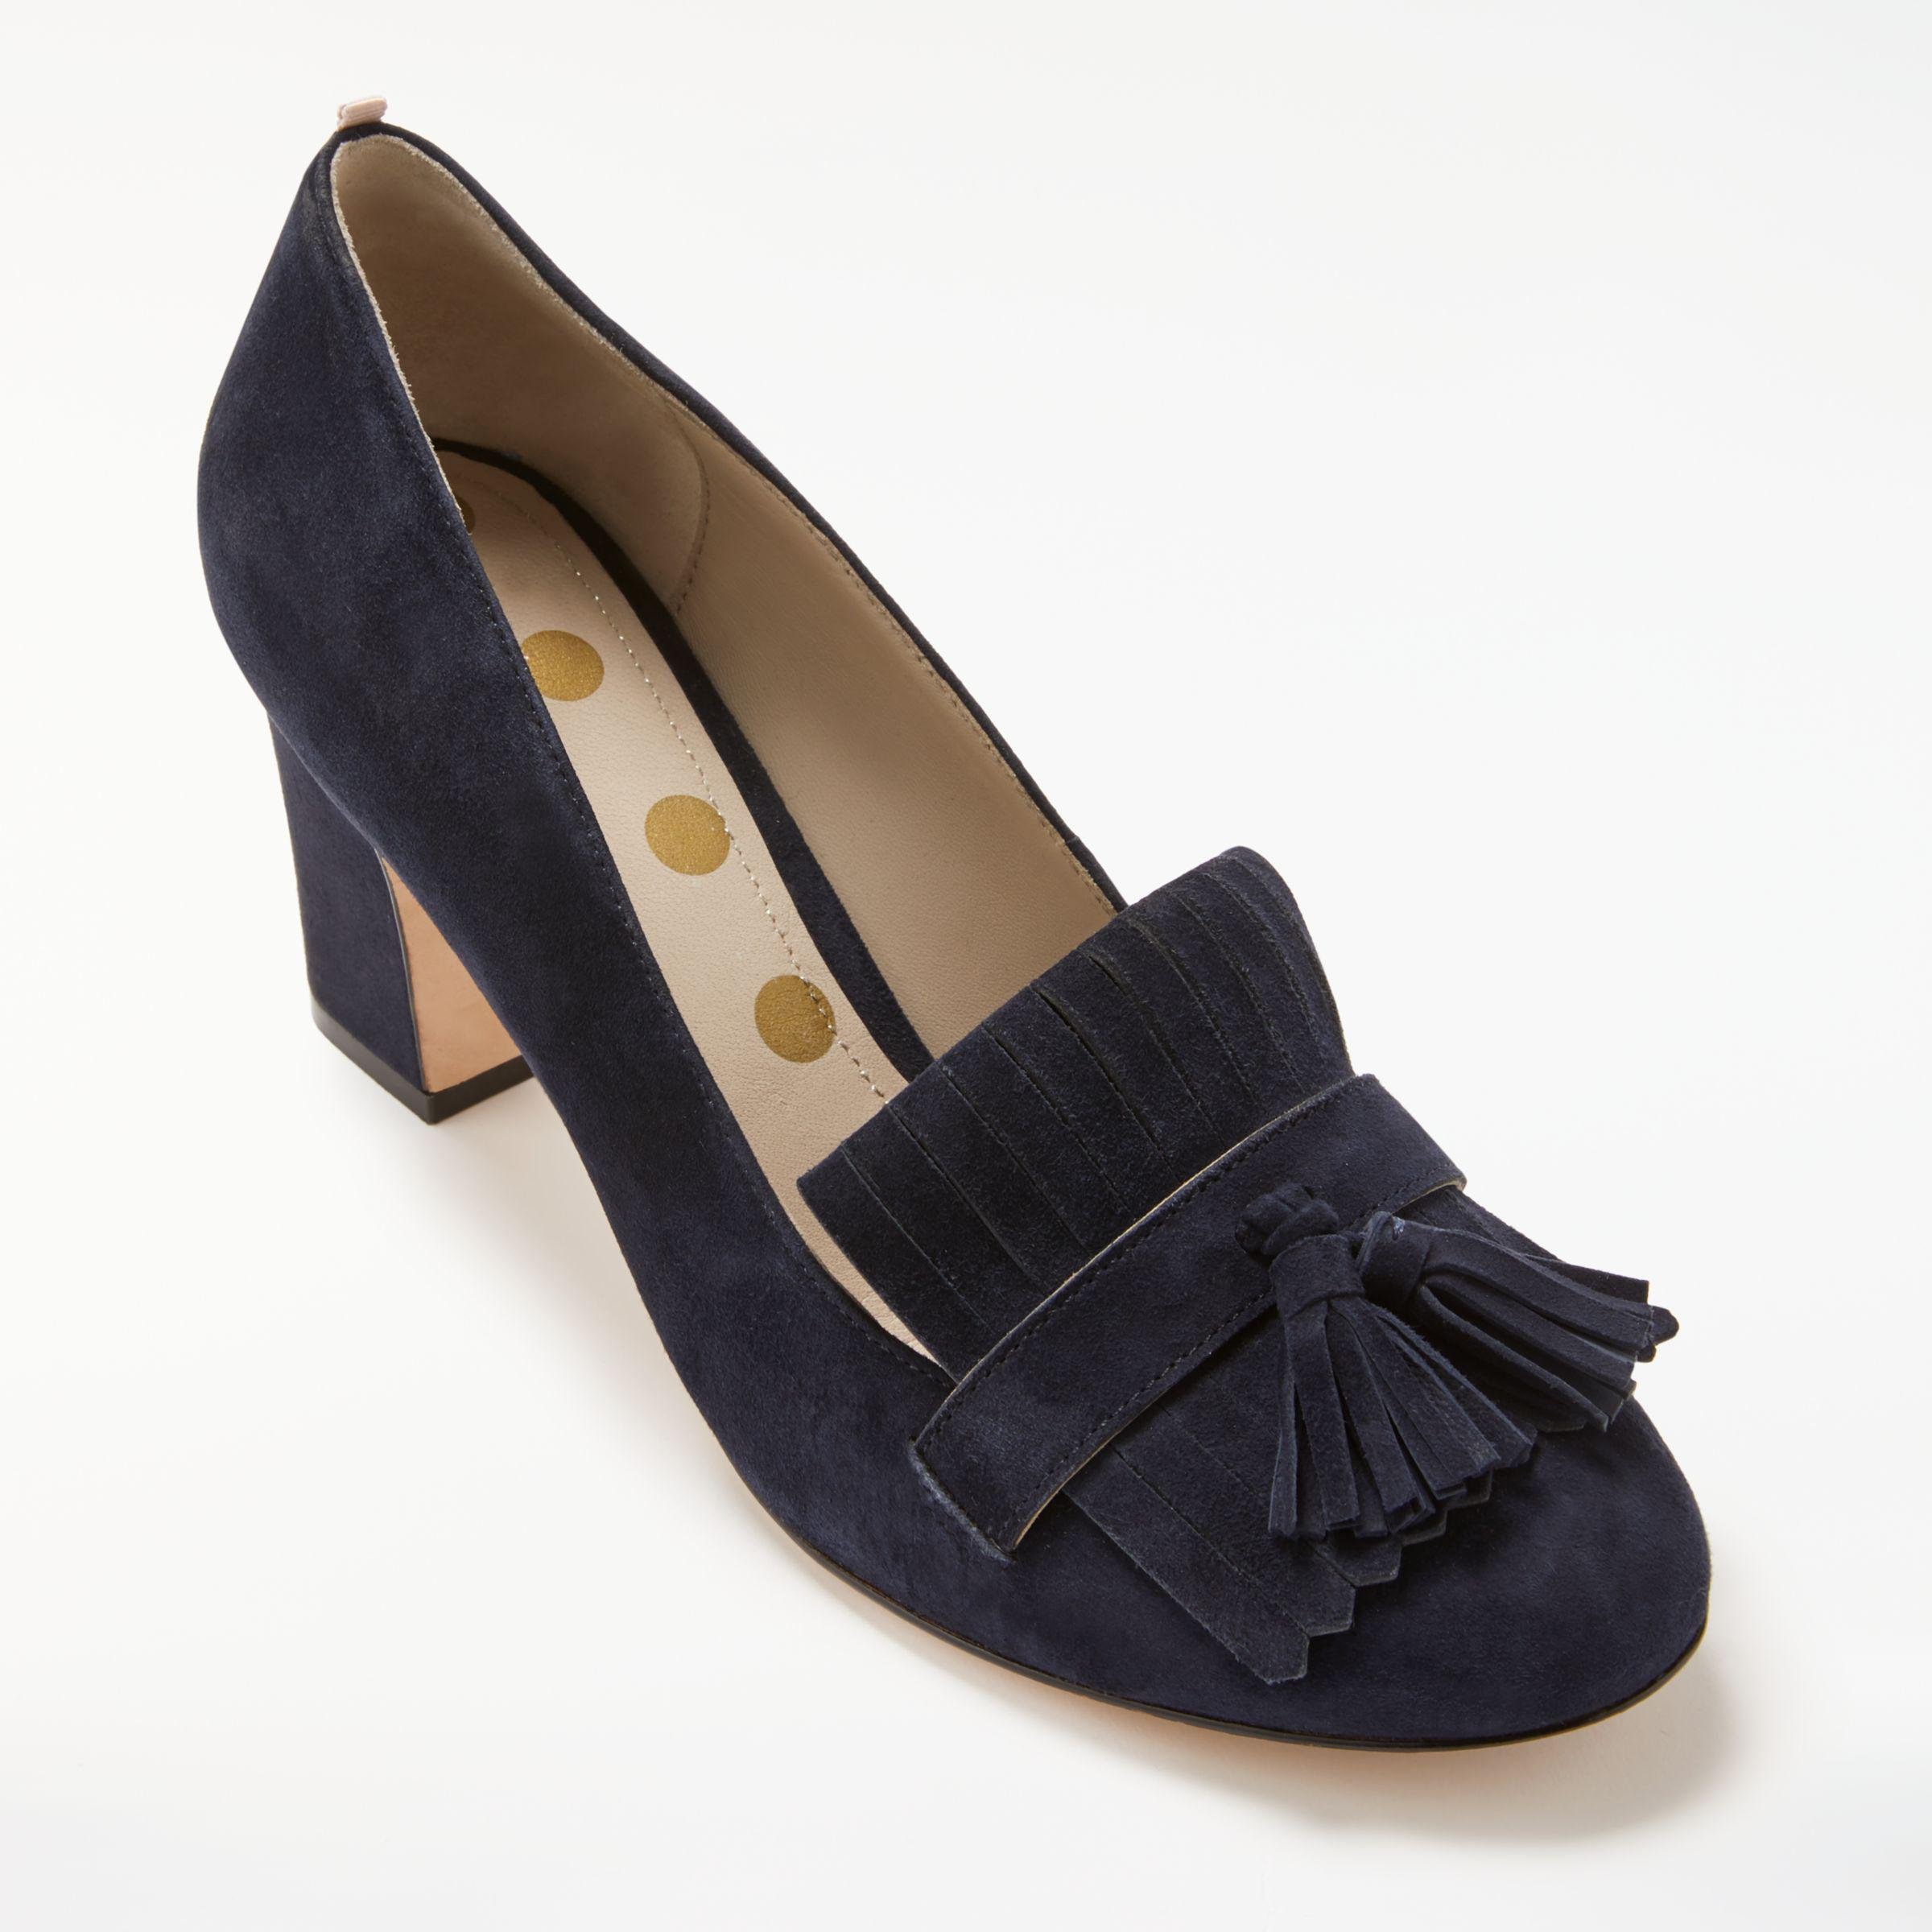 8695d317101 Boden Pippa Block Heeled Loafer Court Shoes in Blue - Lyst